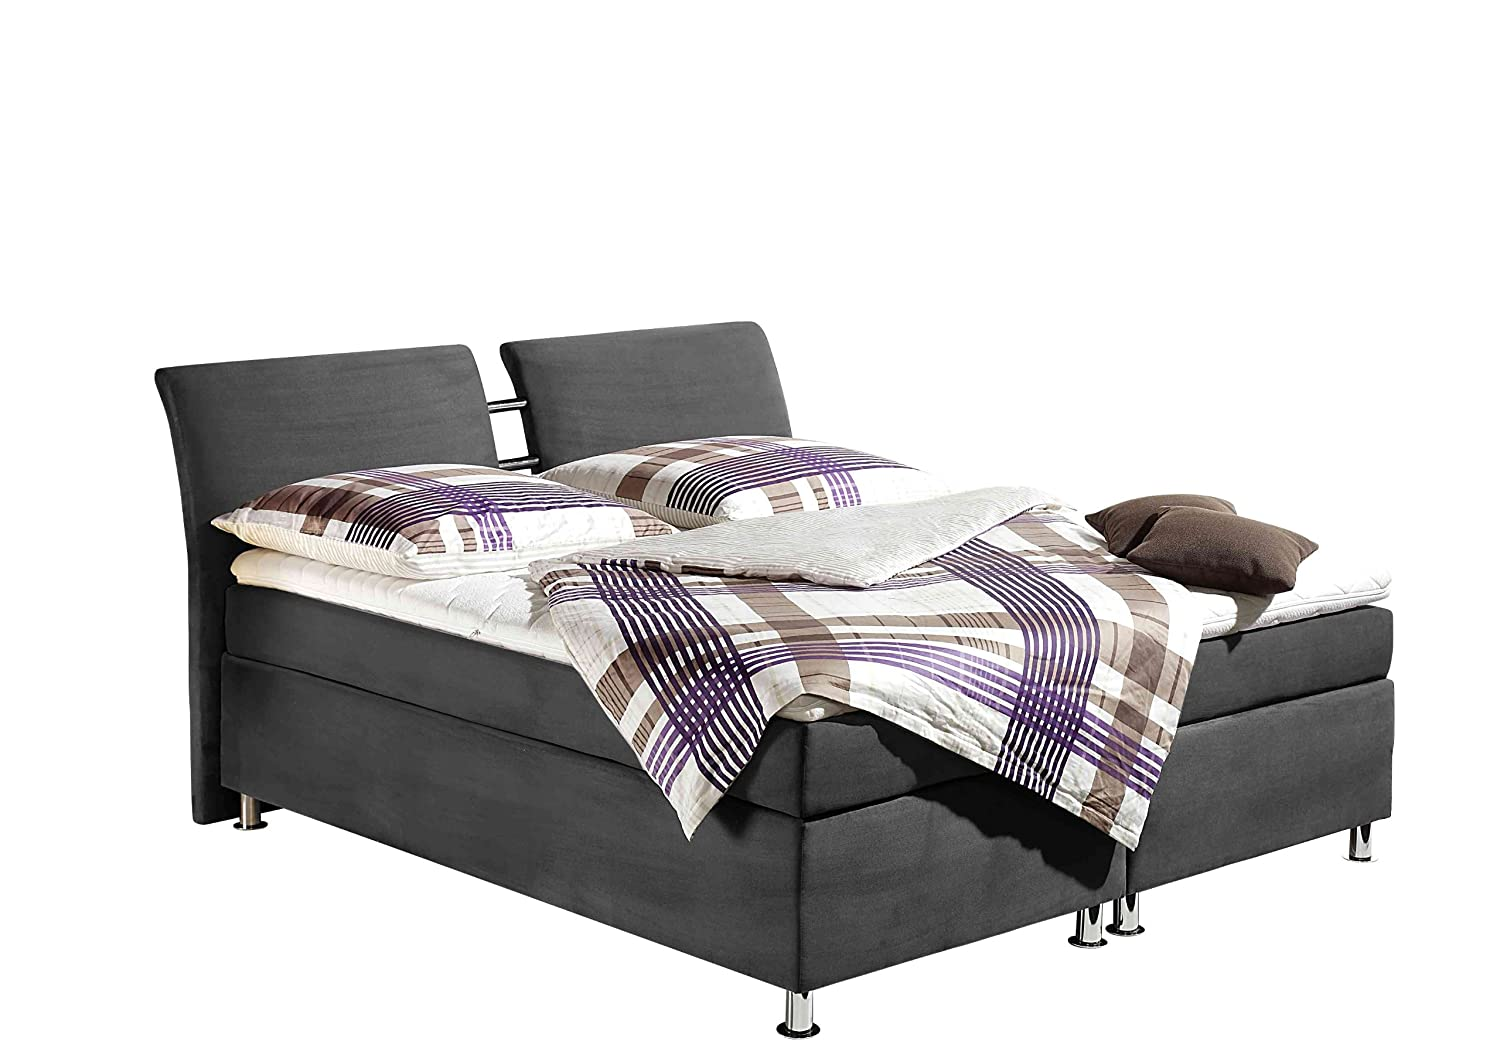 Maintal Betten 235852-4103 Boxspringbett Dean 140 x 200 cm, grau